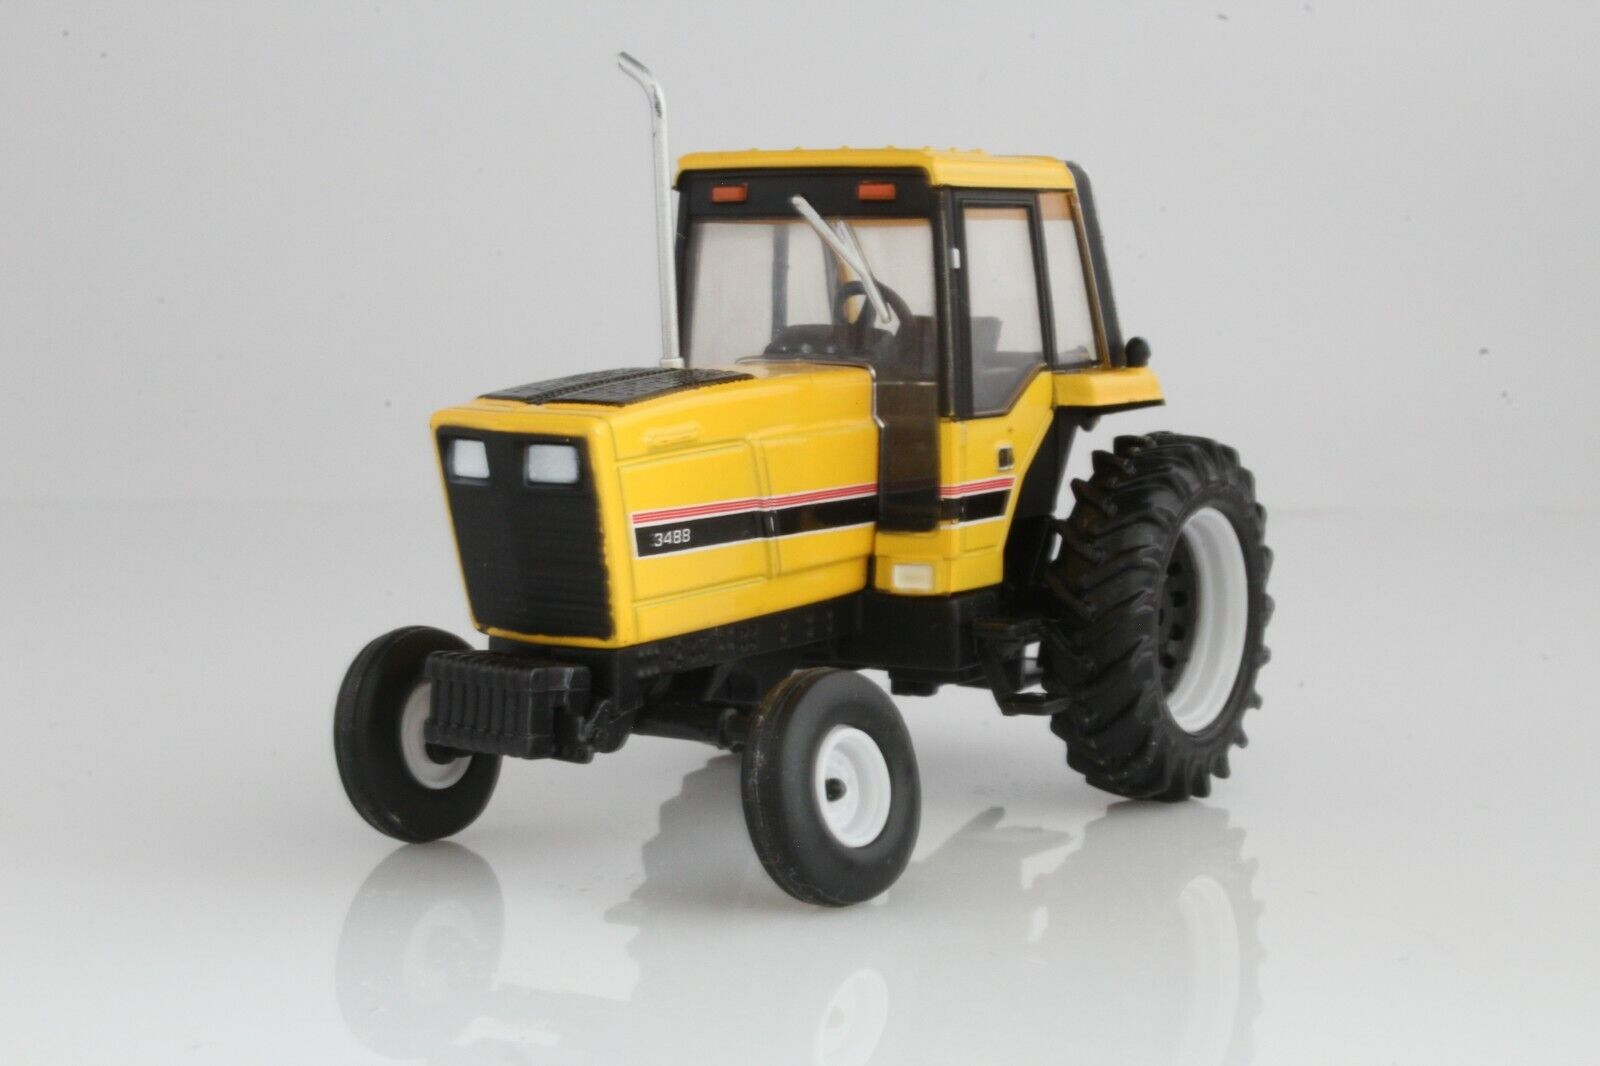 1983 Case IH 3088 Tractor Diecast Model 1:64 Scale International Farm, Yellow